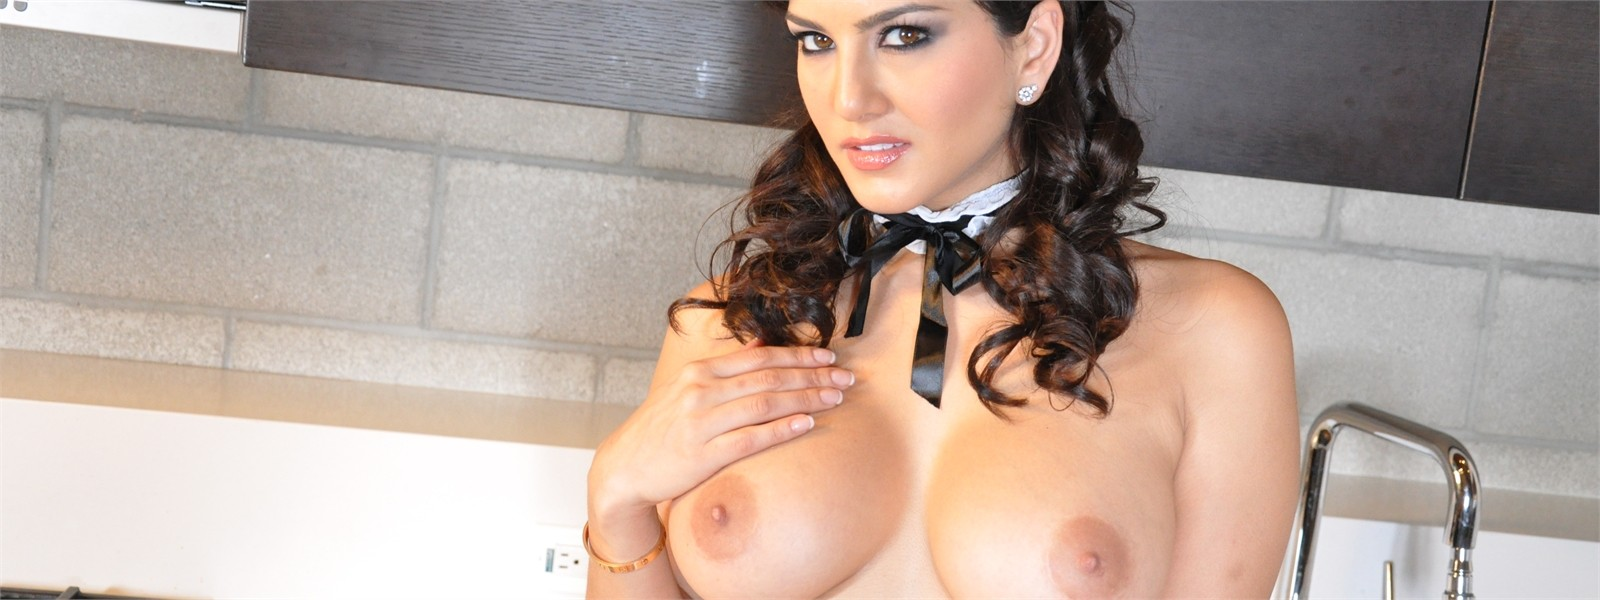 sunny leone pornstar streaming videos, dvds, and more famous porn